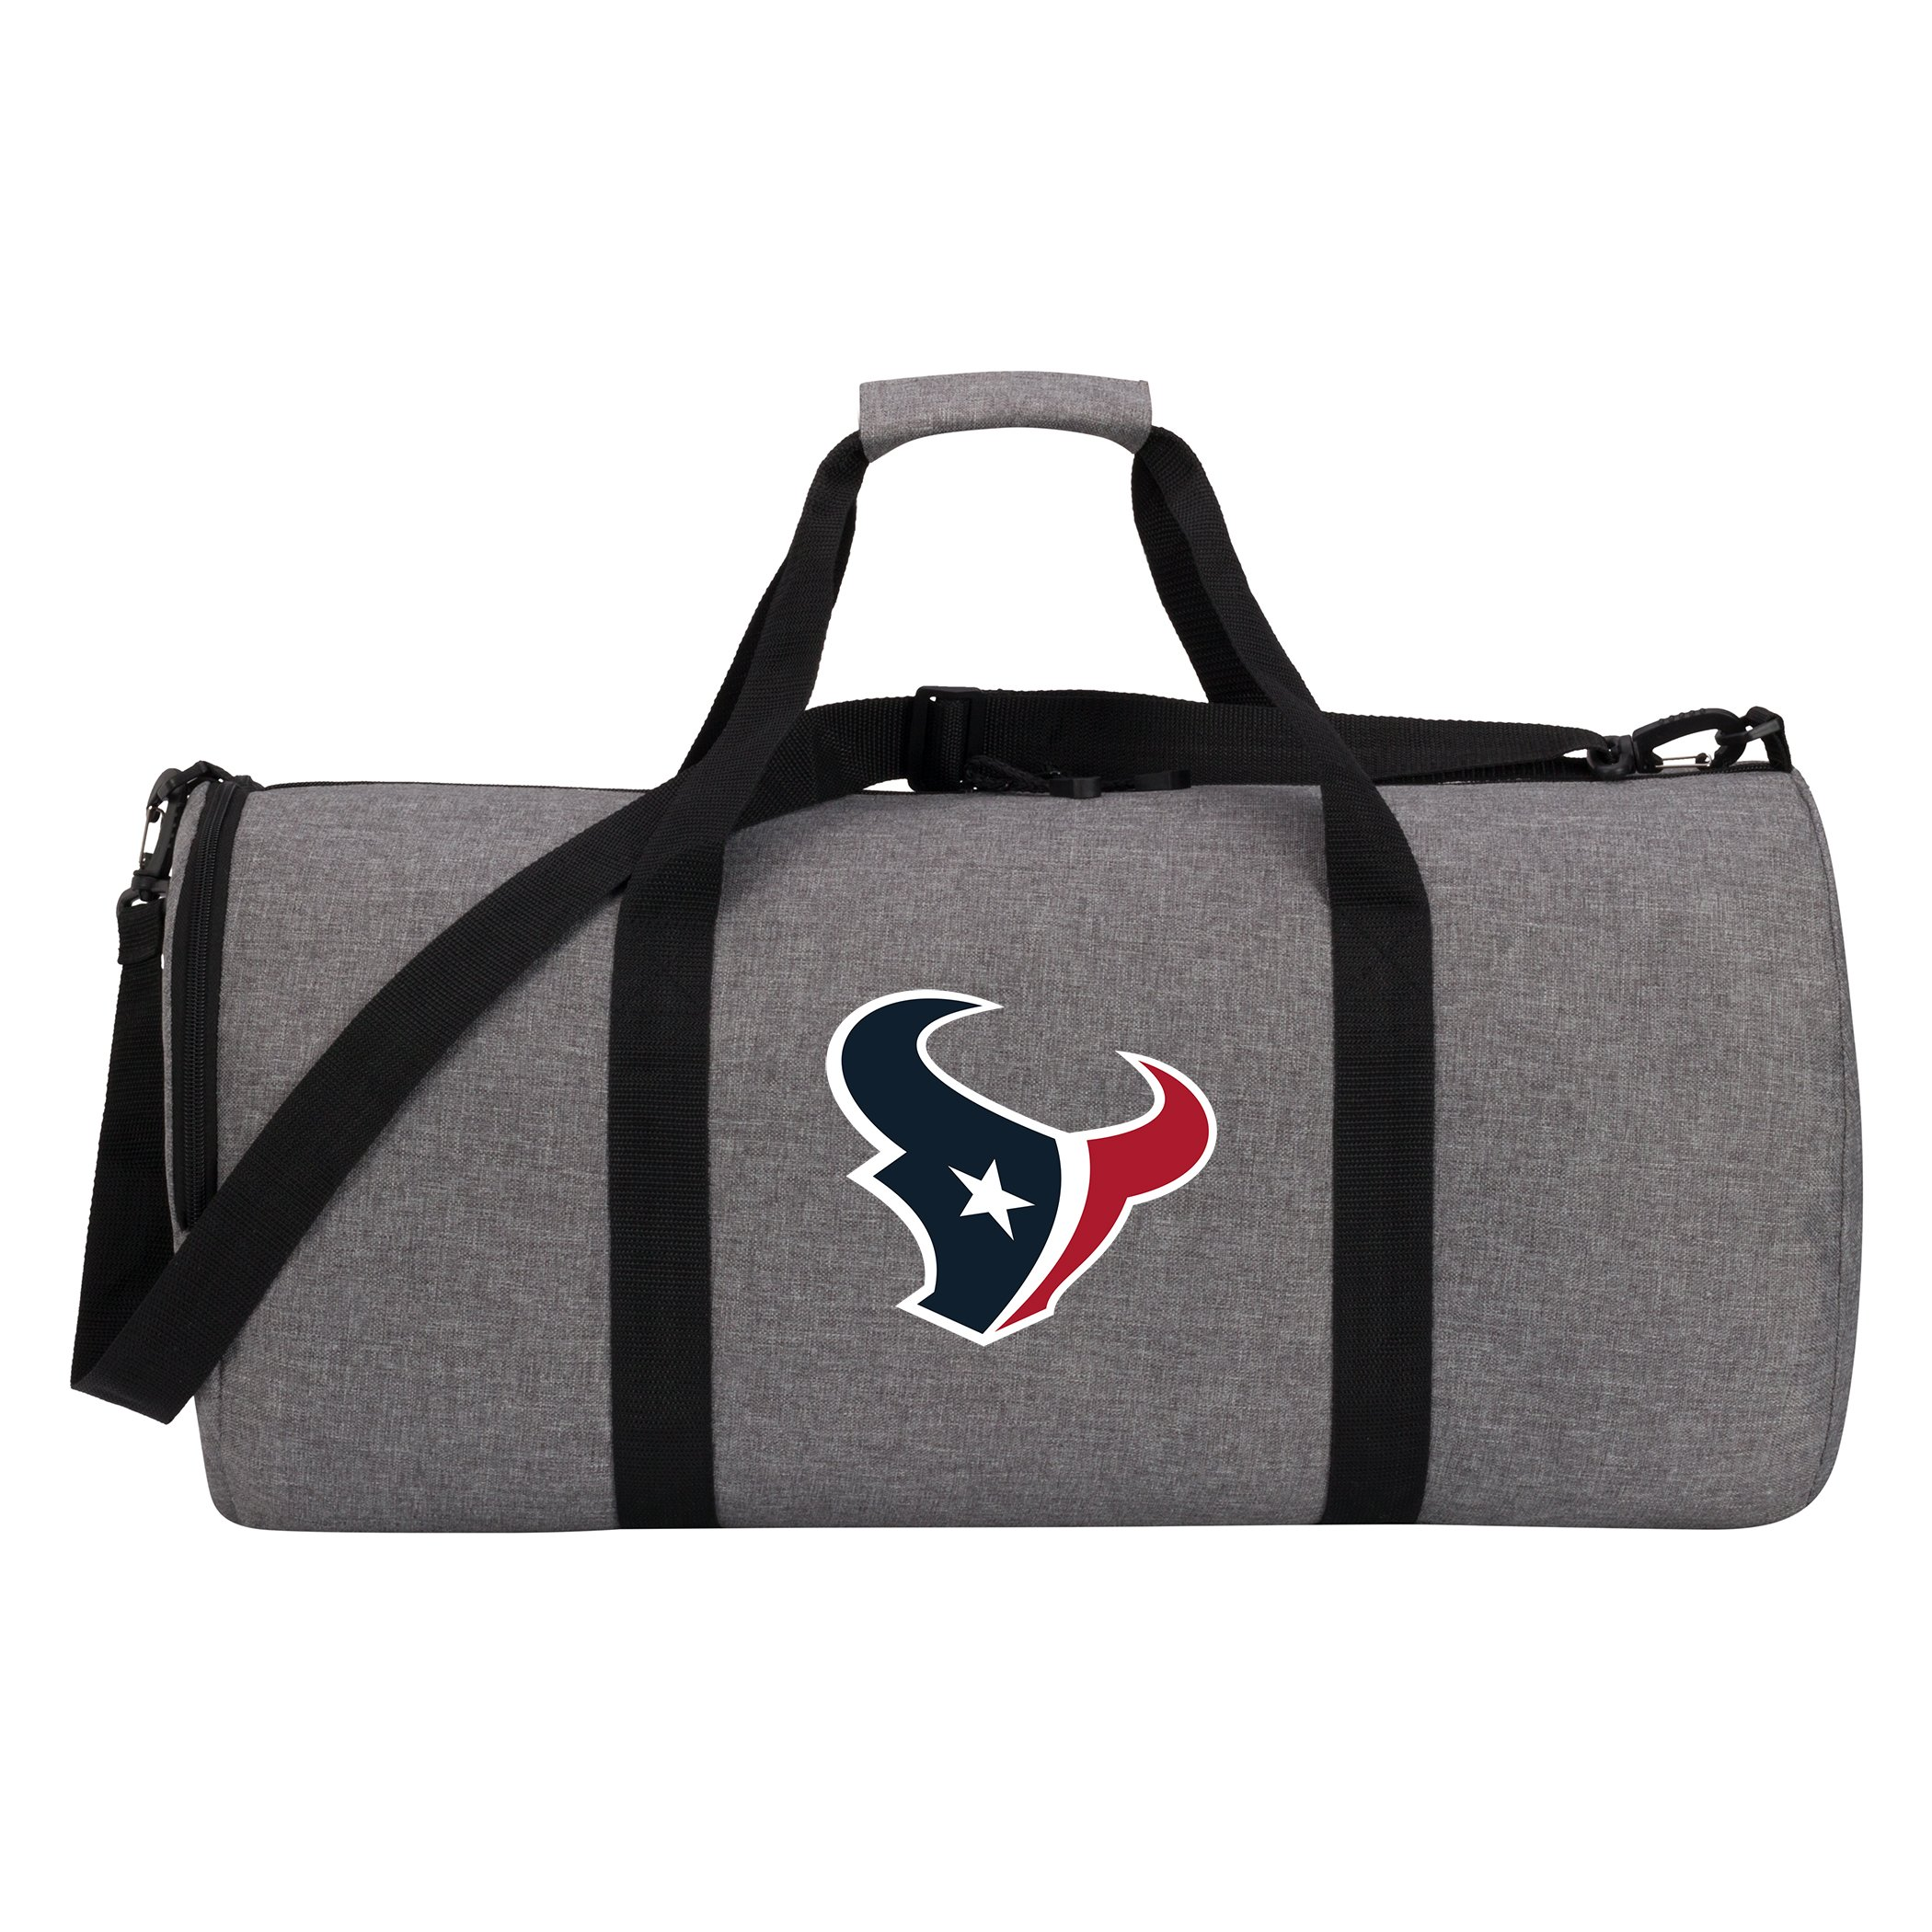 NFL Houston Texans ''Wingman'' Duffel''Wingman'' Duffel, Gray, One Size